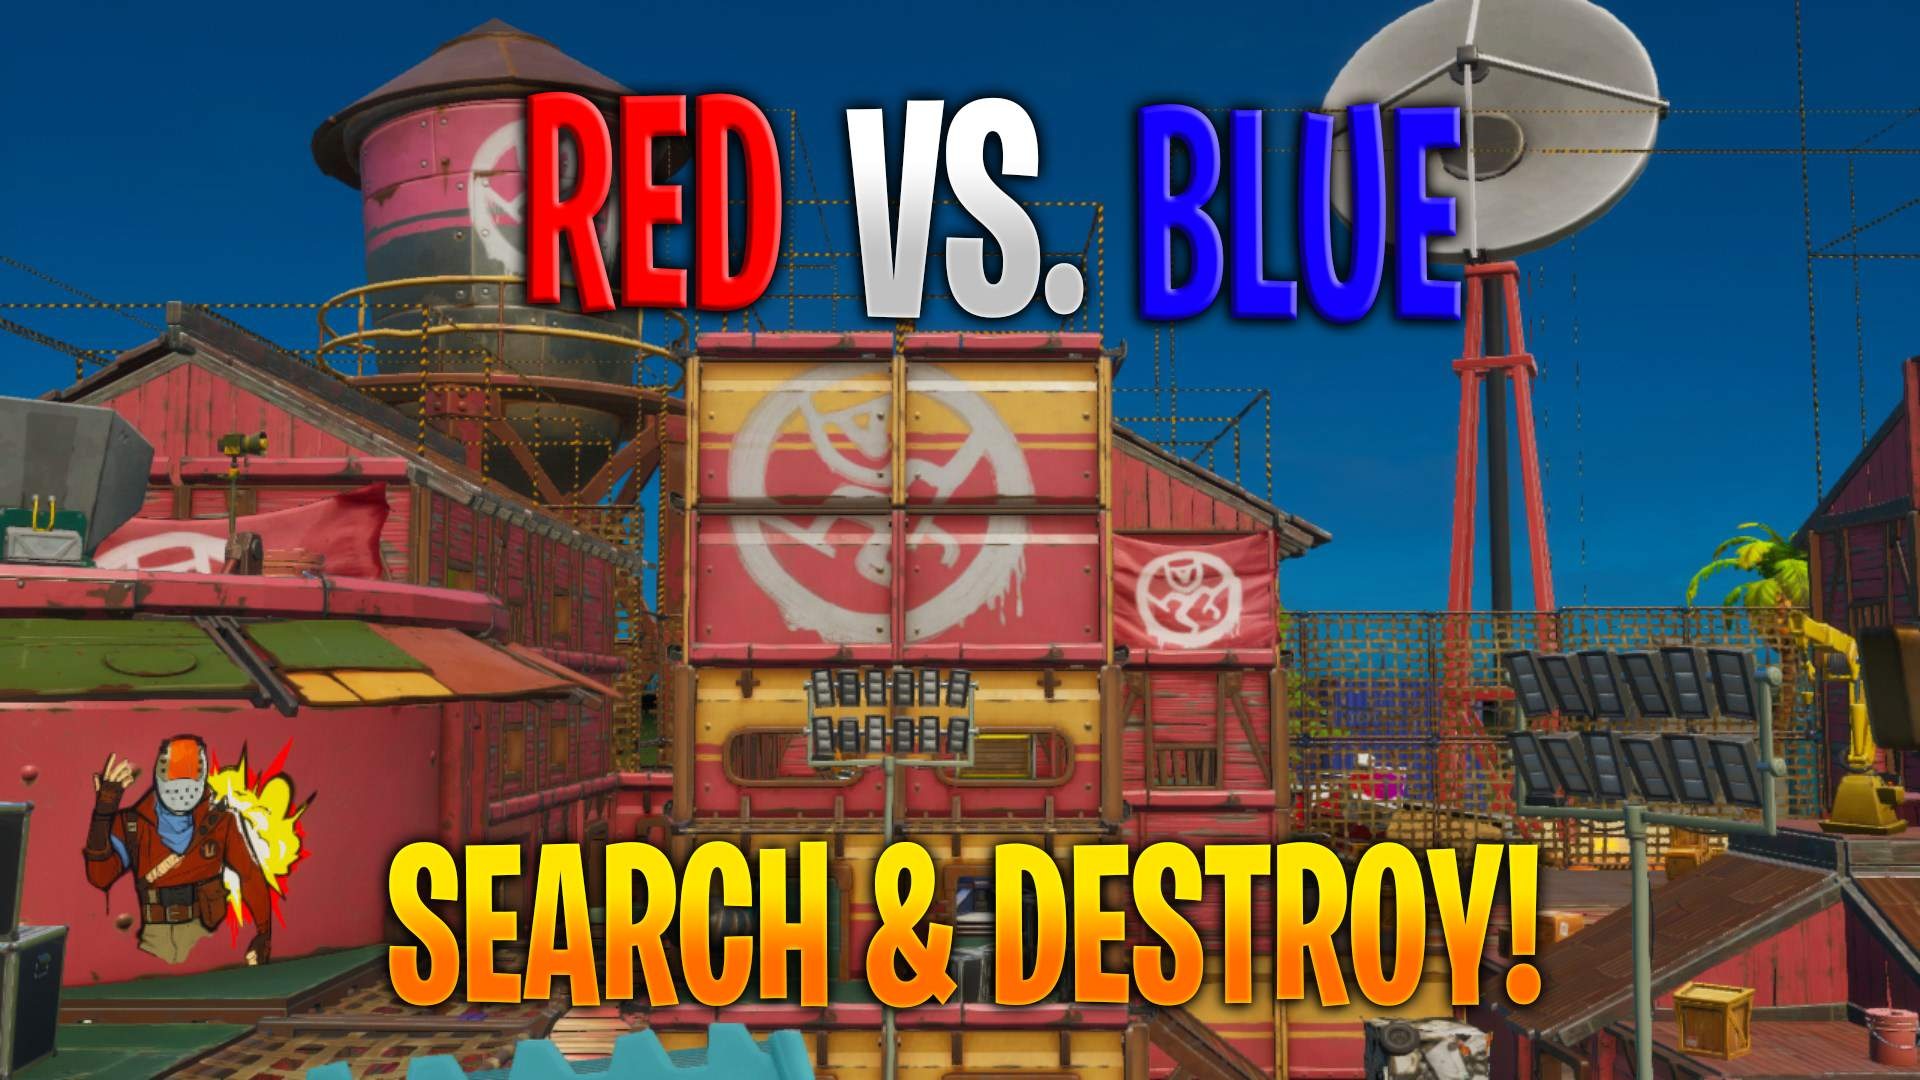 RED VS. BLUE SEARCH & DESTROY!